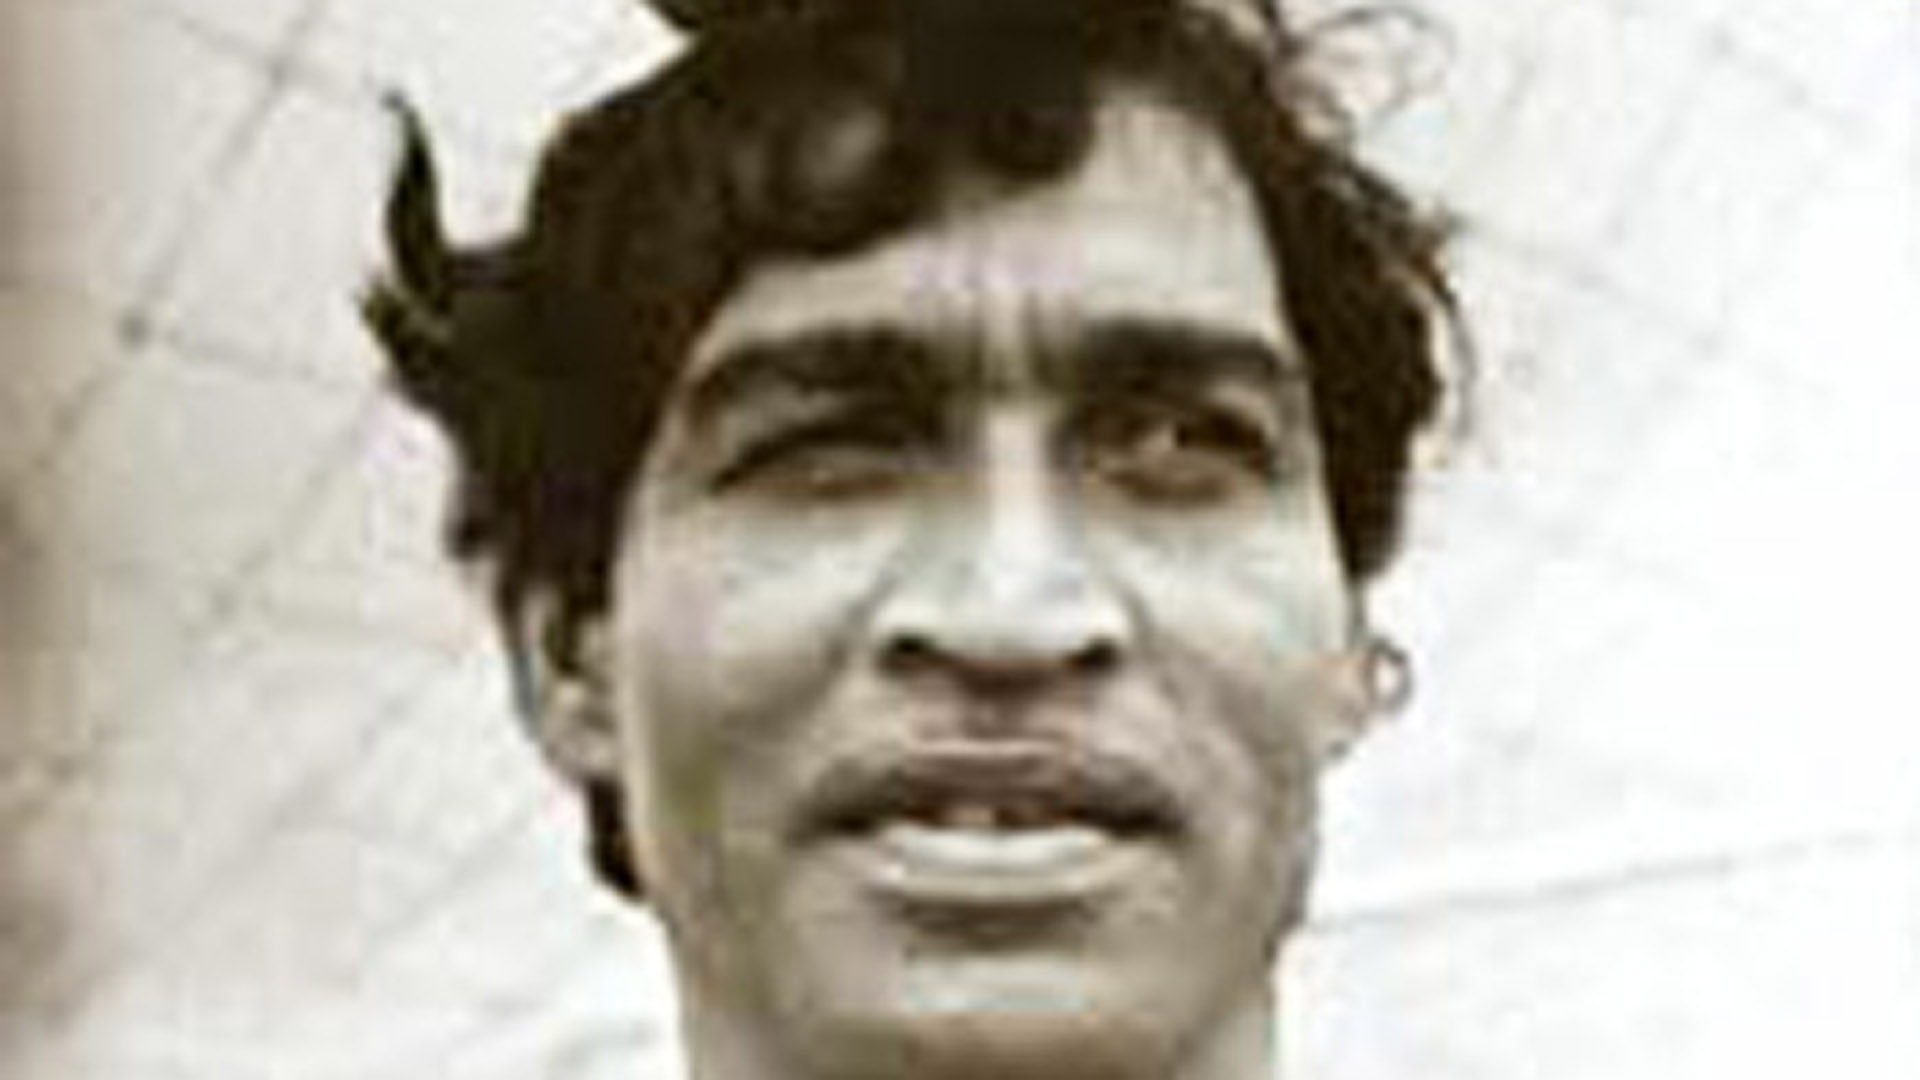 Peter Thangaraj